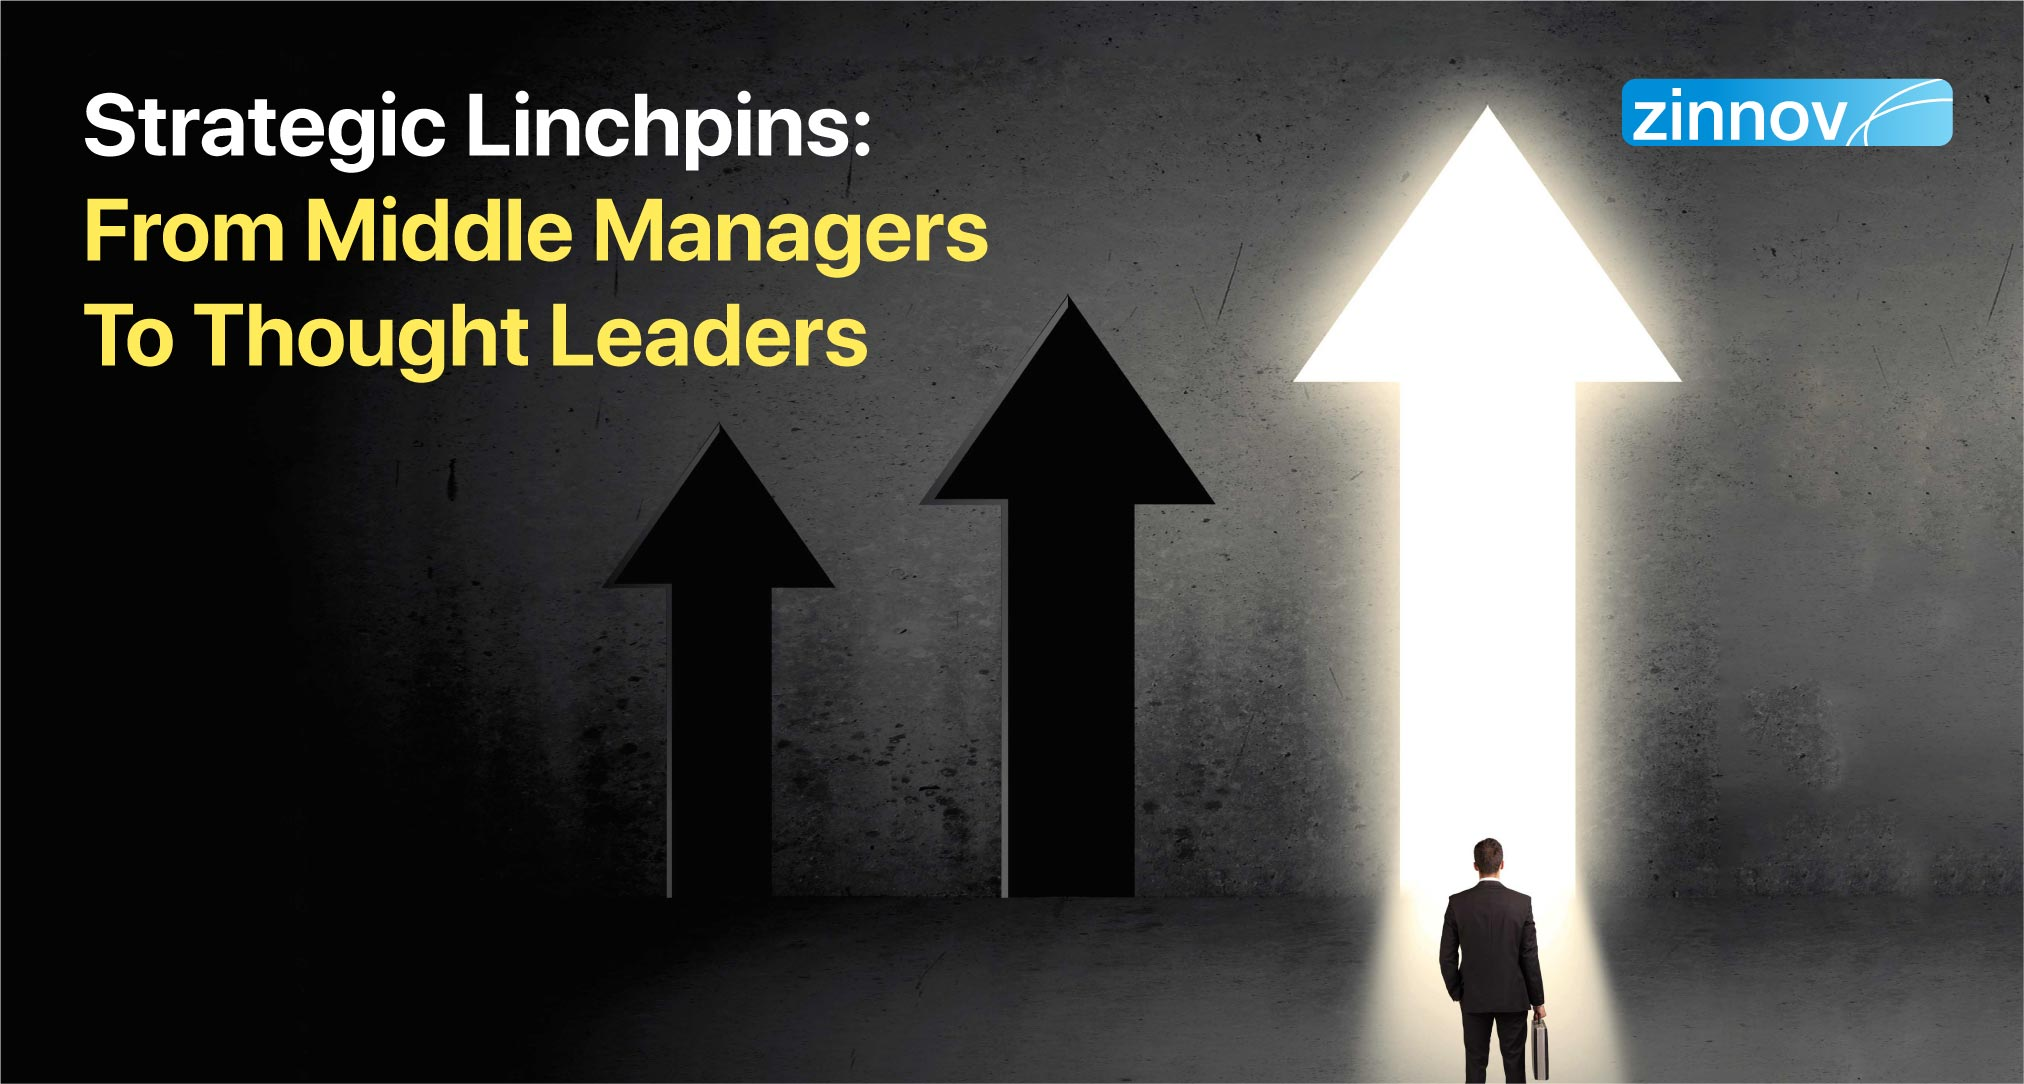 How Can The Middle Management Become Thought Leaders